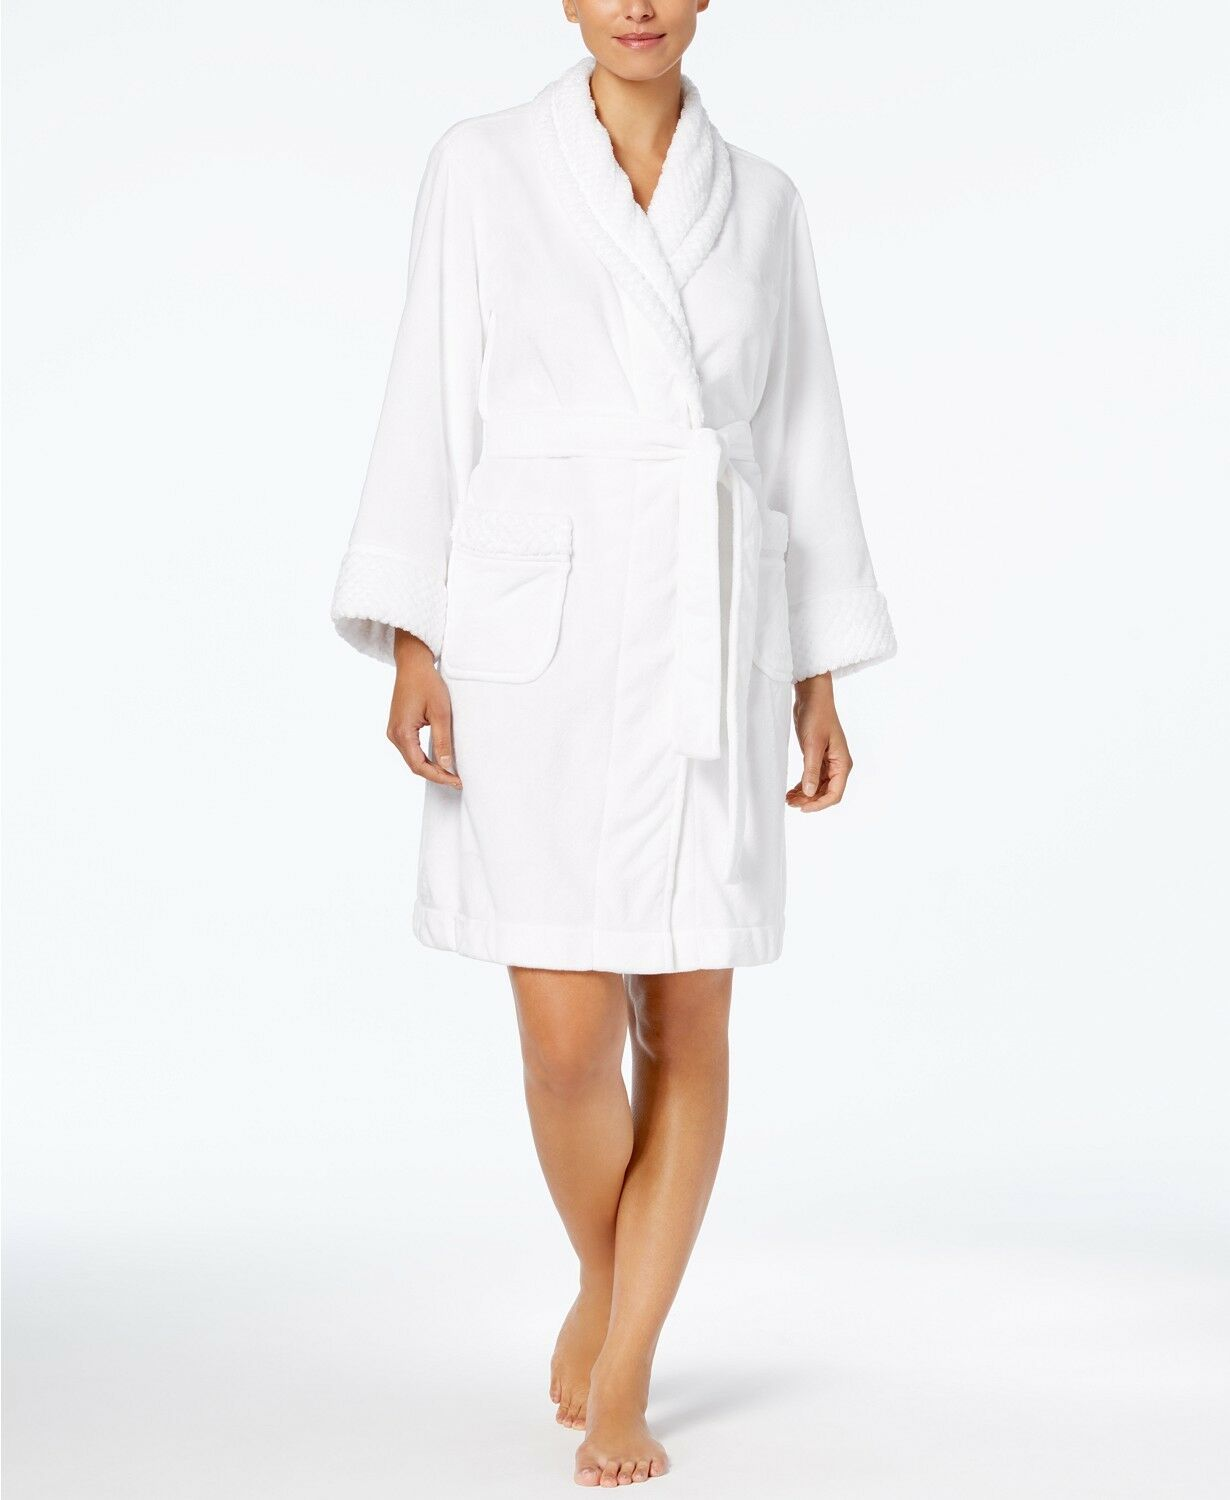 Charter Club Short Dimple Contrast Robe 171179M716 Size L Bright White